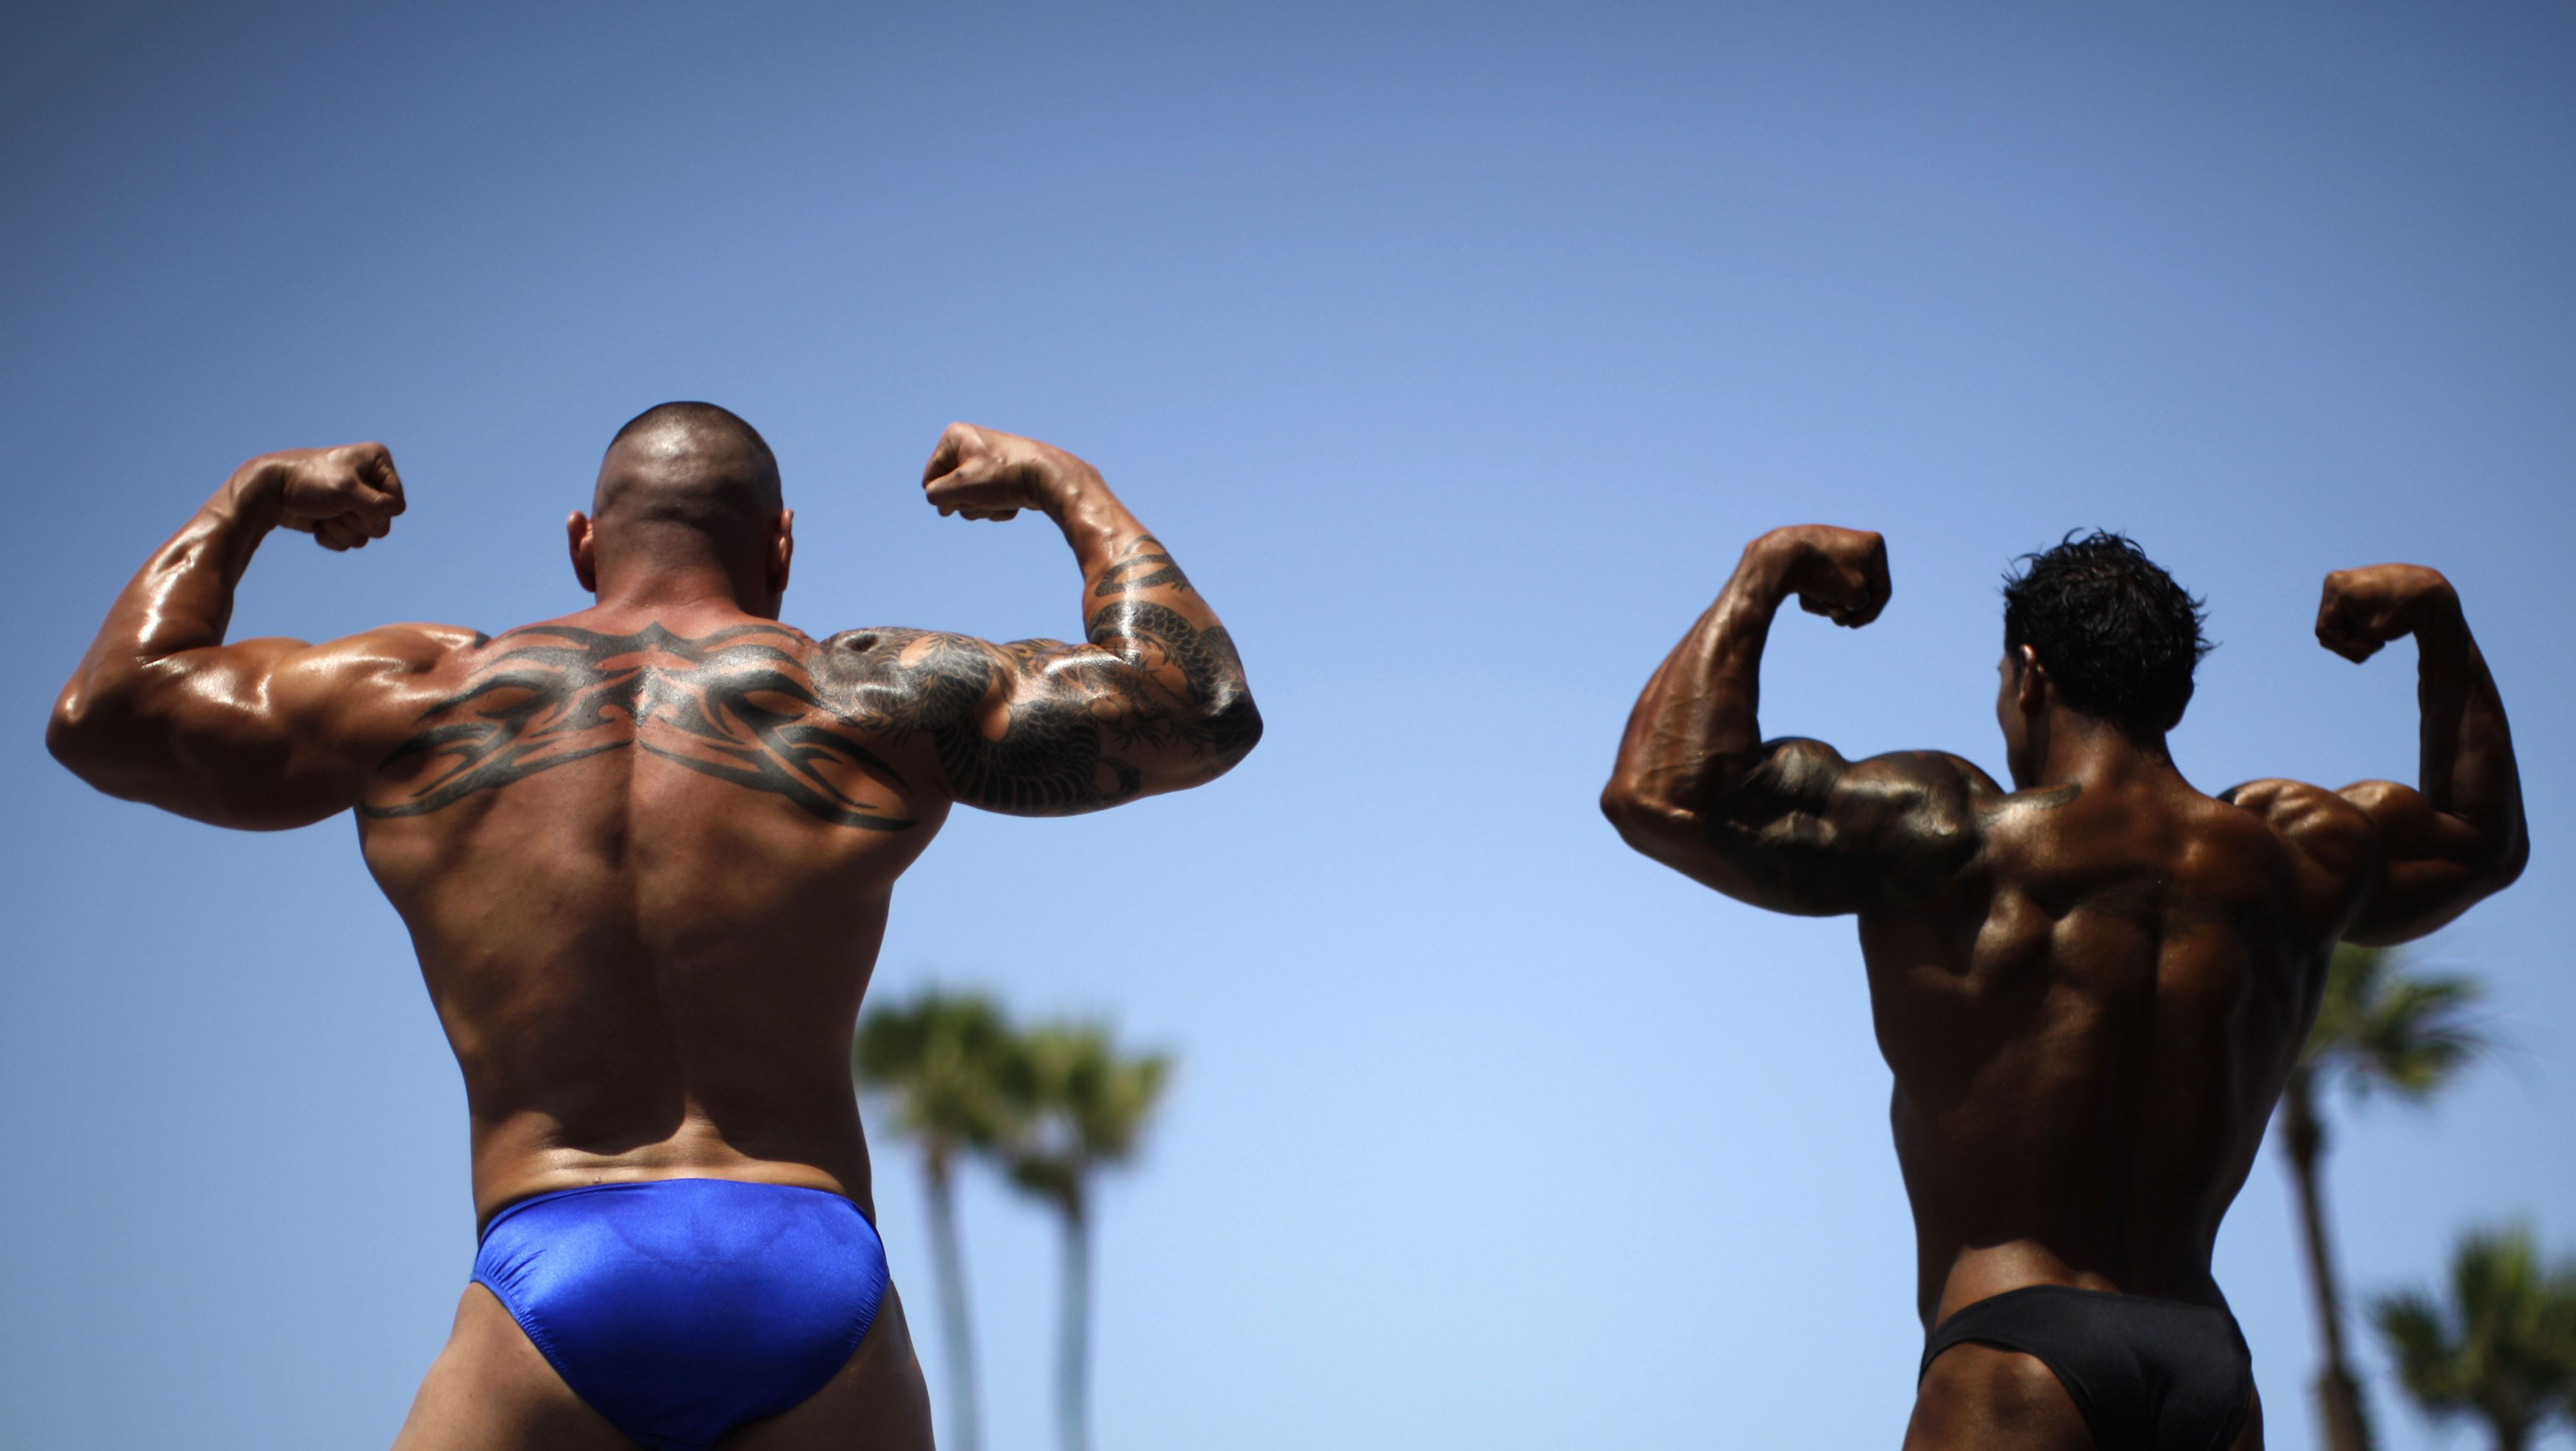 Men compete in the Muscle Beach Independence Day bodybuilding contest on Venice Beach in Los Angeles, California, July 4, 2013. REUTERS/Lucy Nicholson (UNITED STATES - Tags: SOCIETY SPORT)